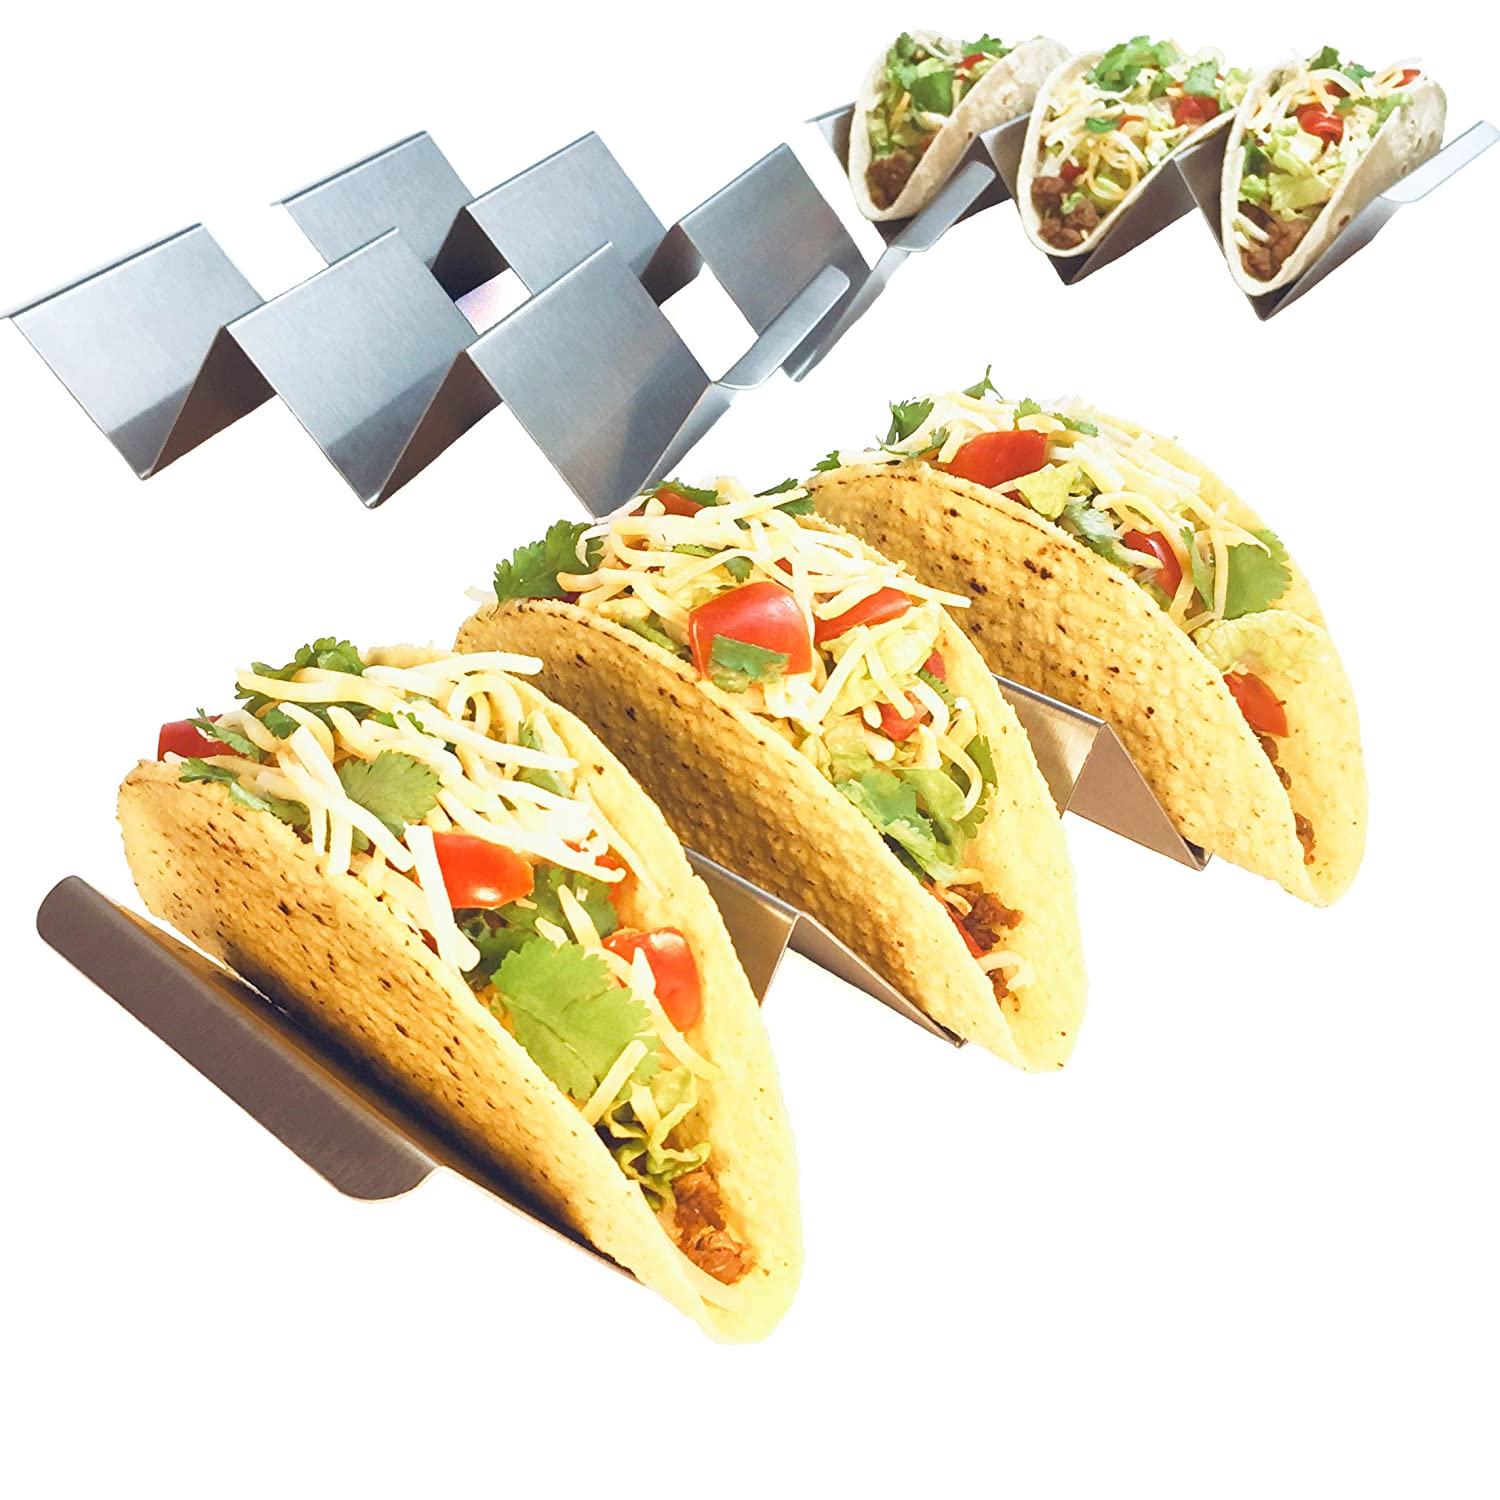 4 Pack - Jumbo Stainless Steel Taco Holder Stand | Enhanced Durability Restaurant Grade Stainless Steel for FULLER Sized Tacos | Oven, Grill and Dishwasher Safe Bakeware/Serveware